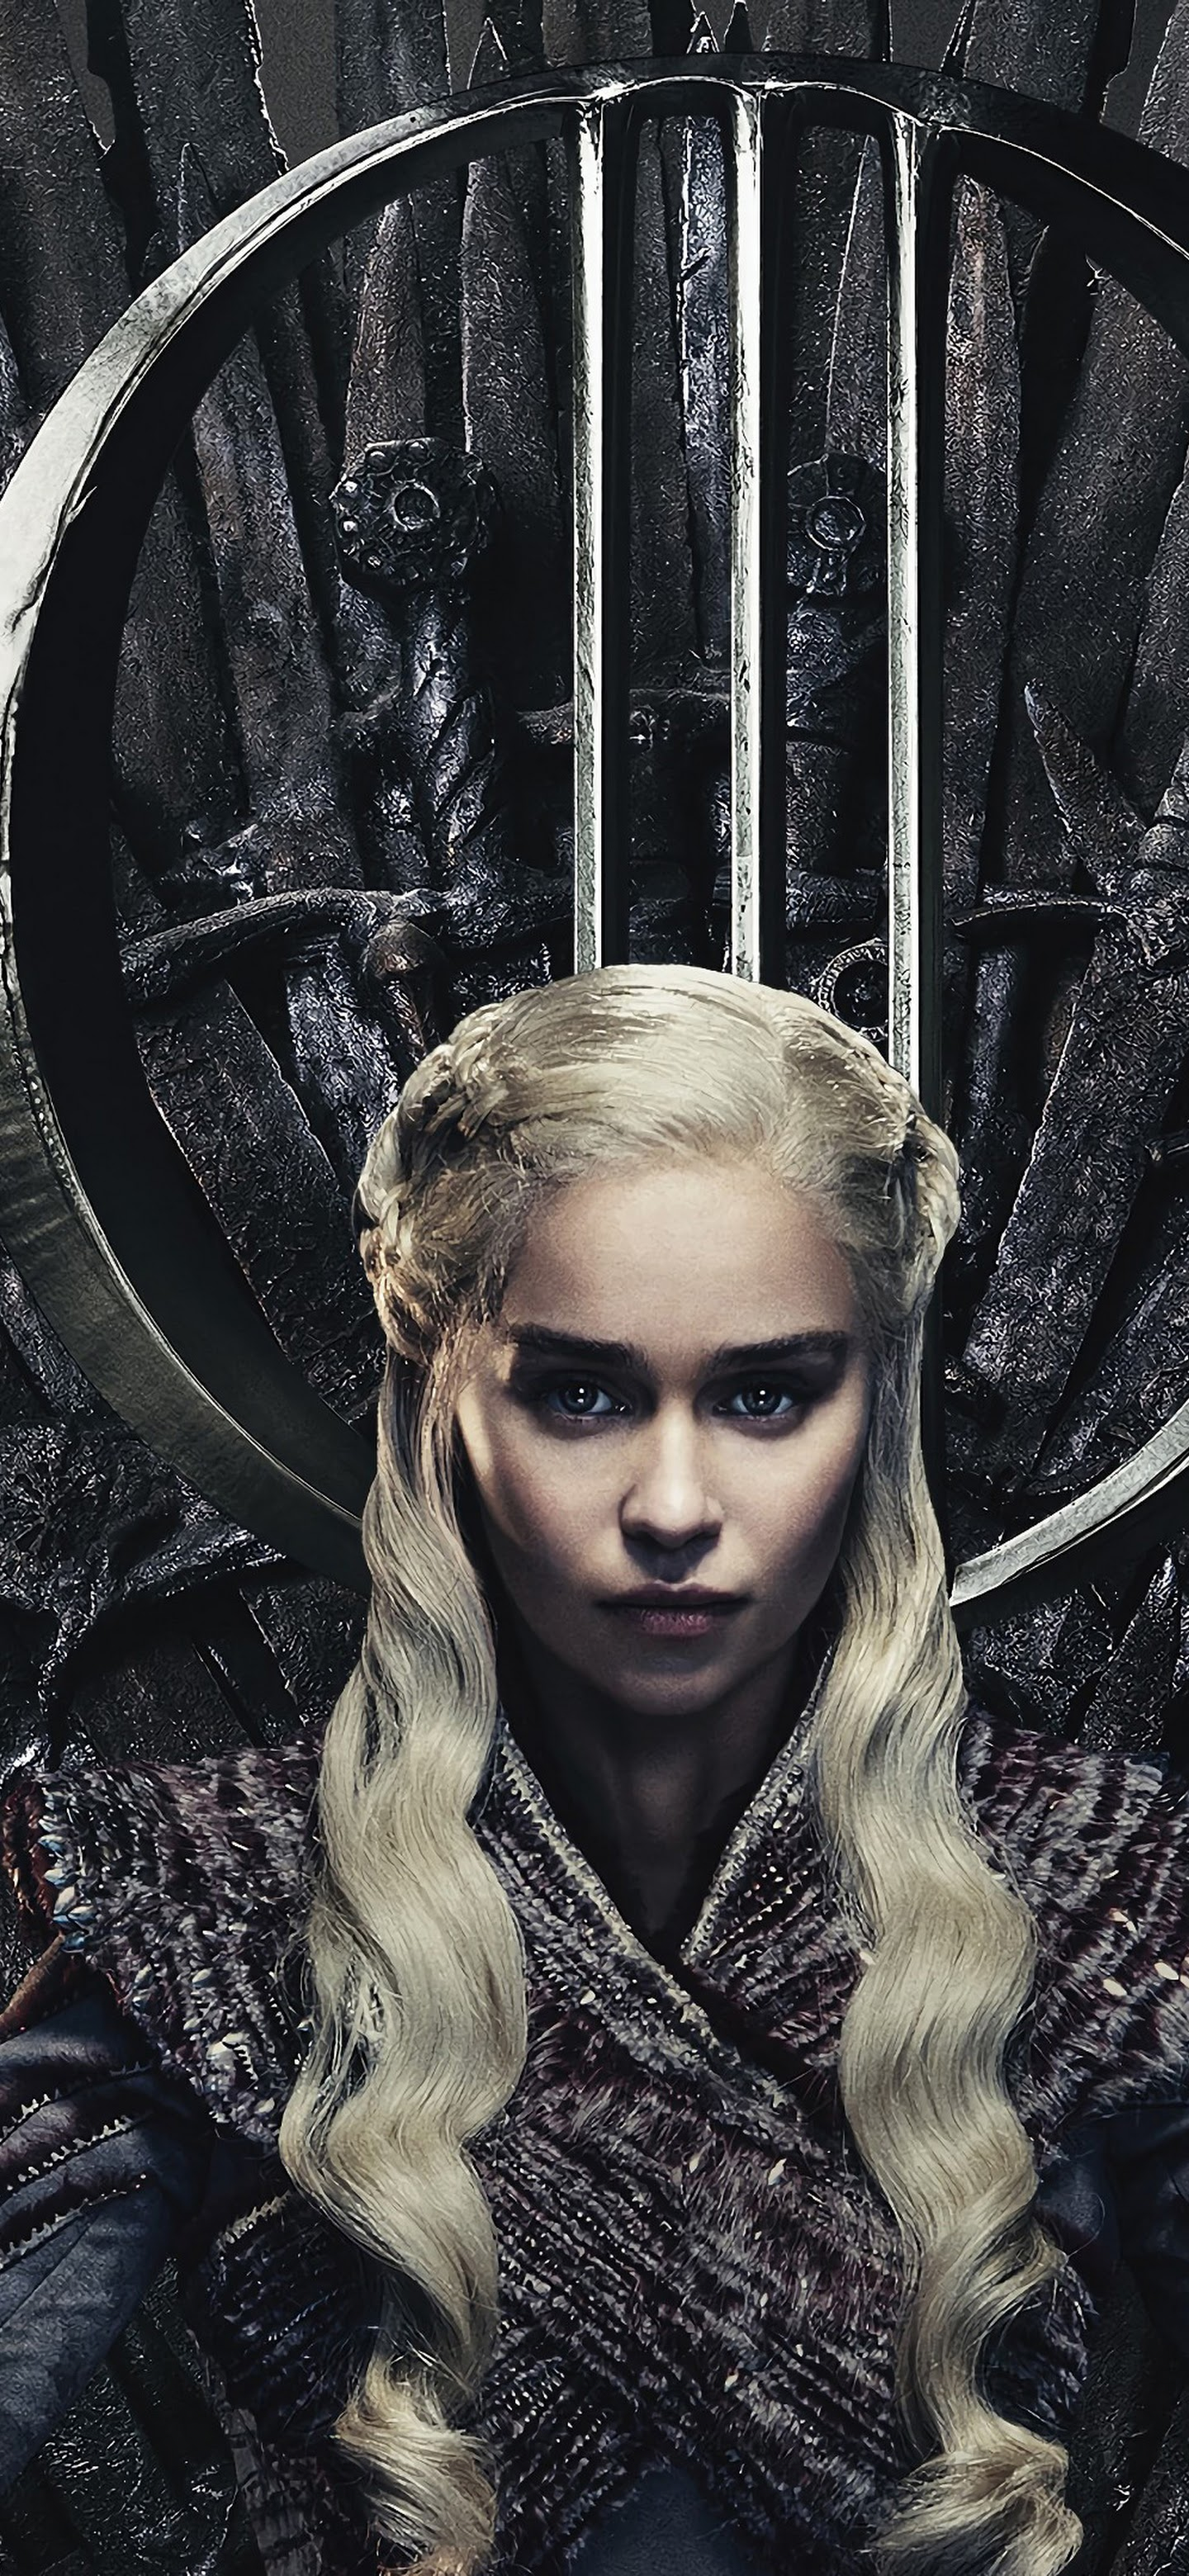 Daenerys Targaryen Game Of Thrones Season 8 4k Wallpaper 59